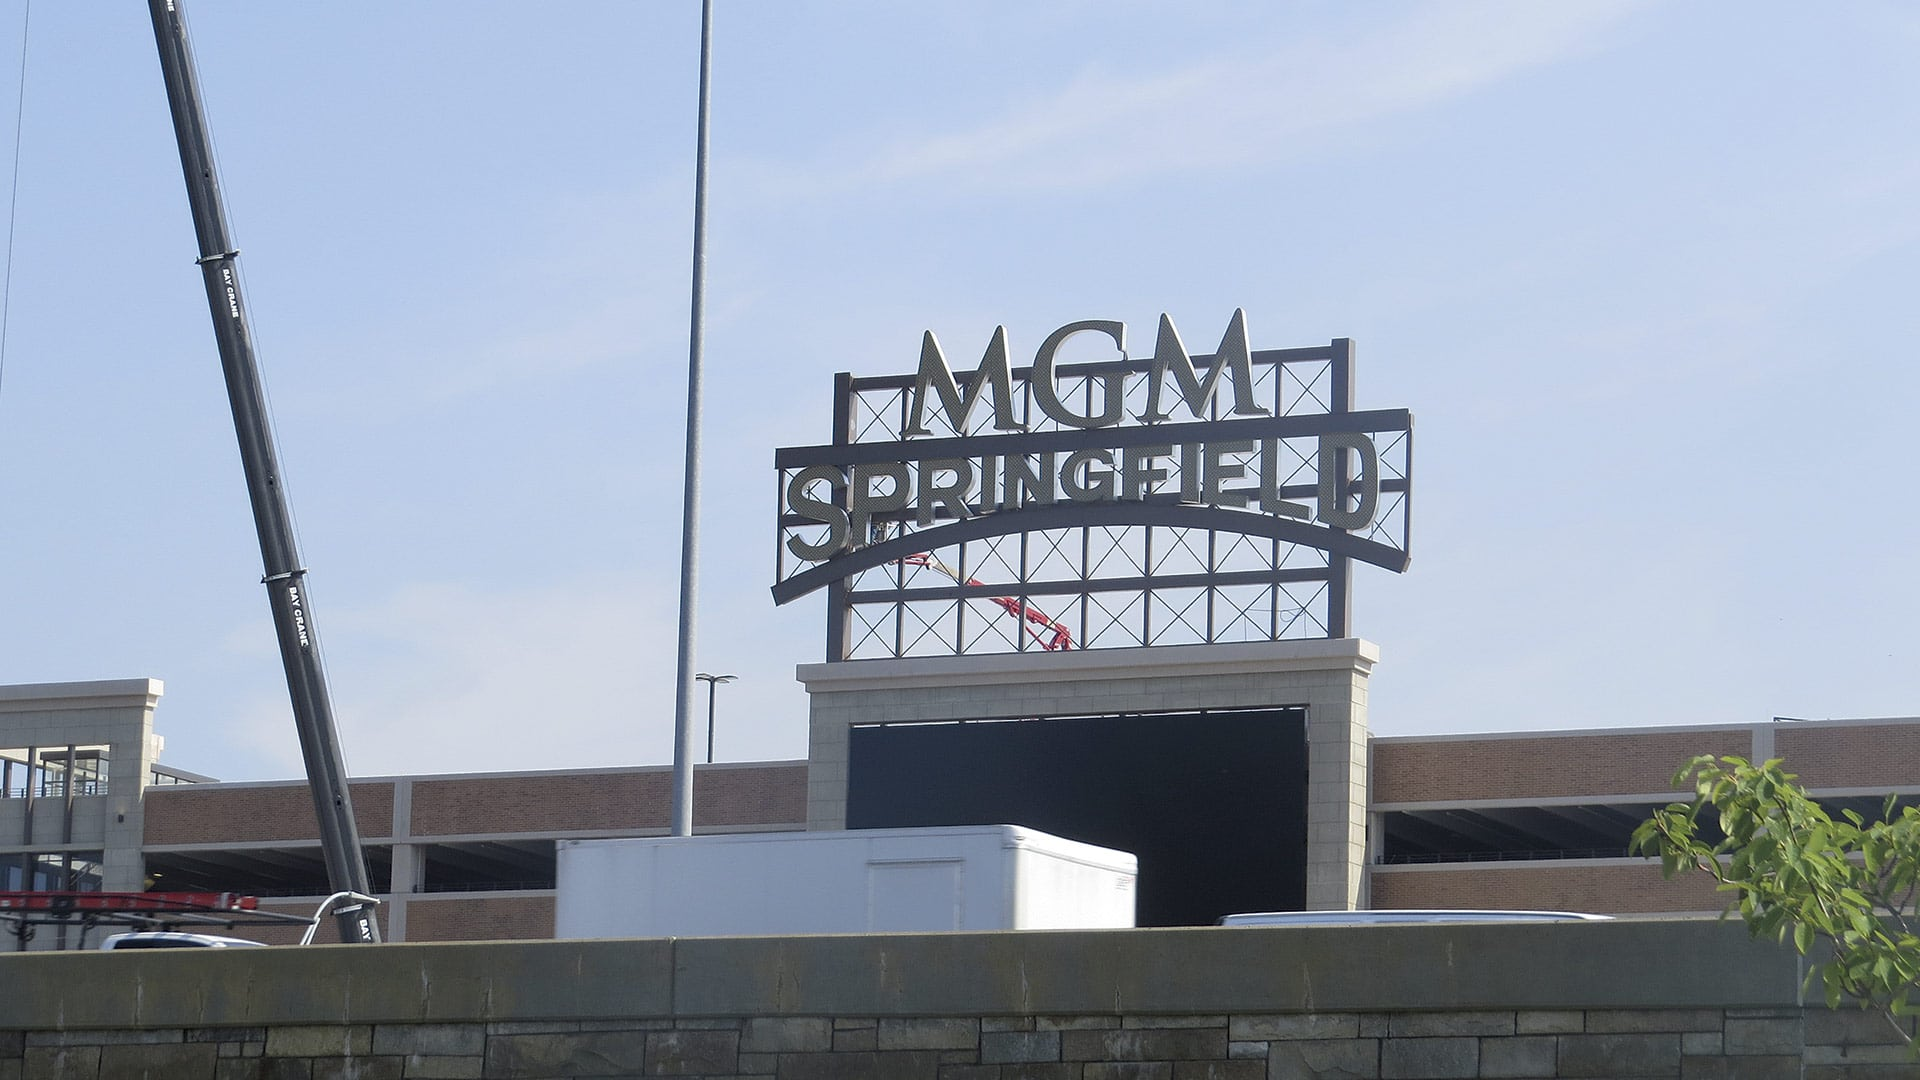 The giant MGM Springfield sign above the massive parking garage